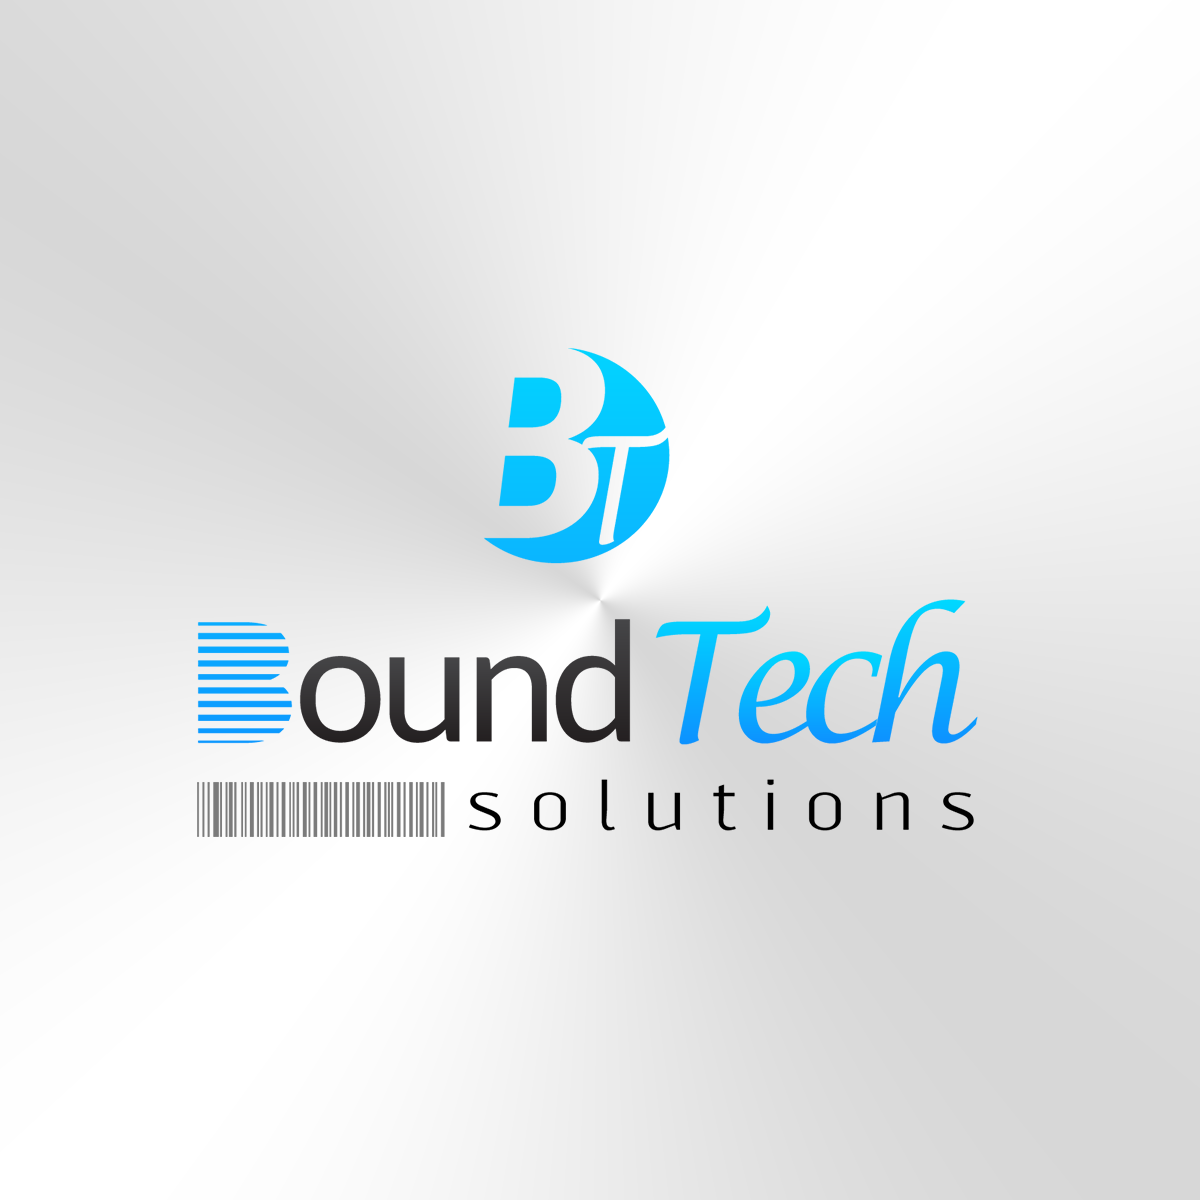 More about Bound Tech Solutions